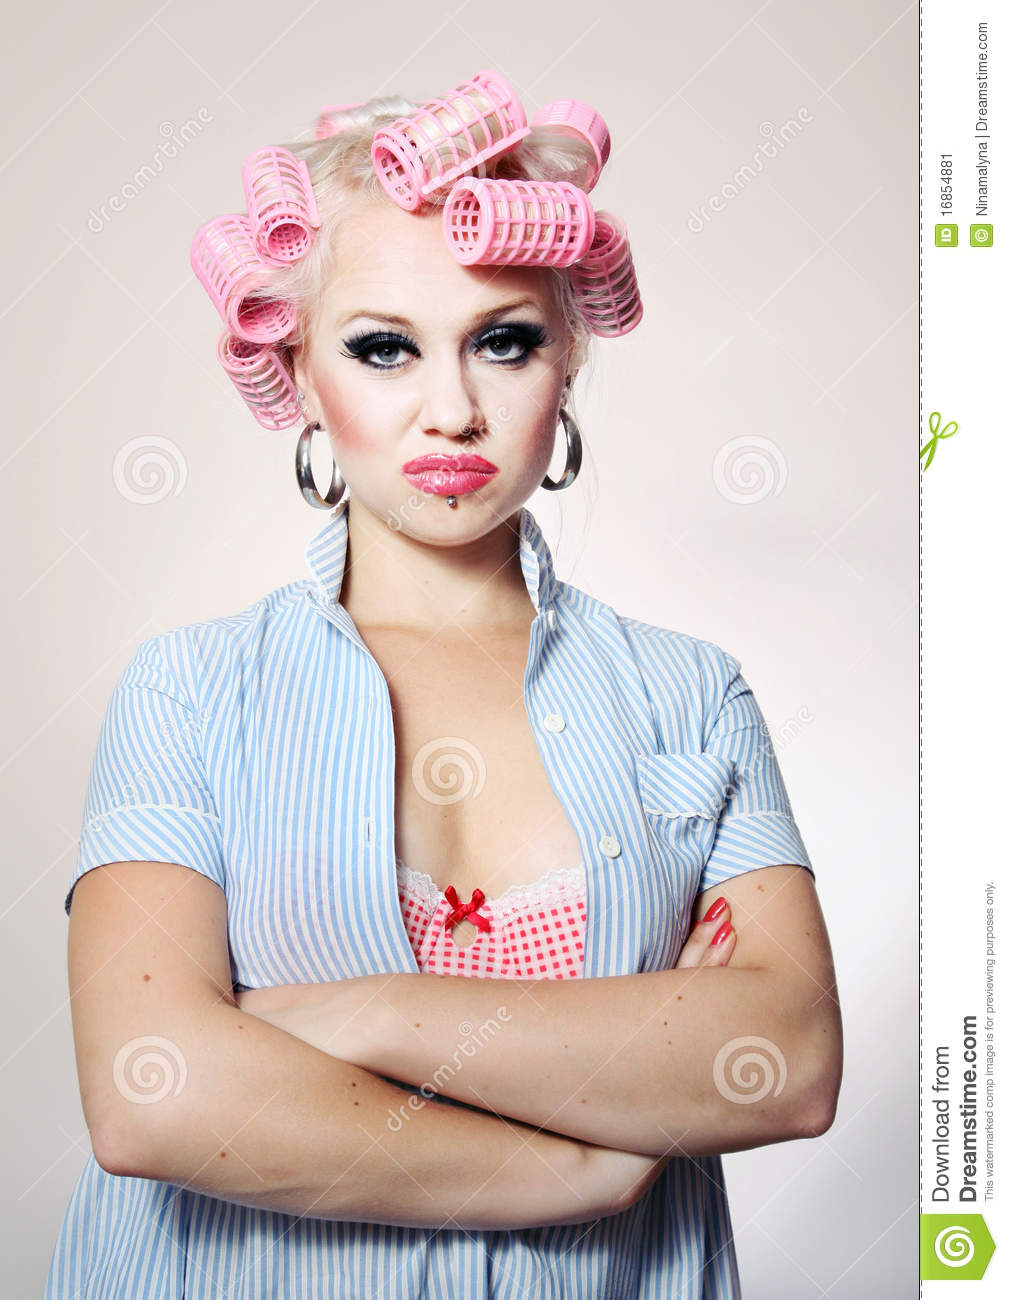 Bored Attractive Housewife Stock Image - Image: 16854881